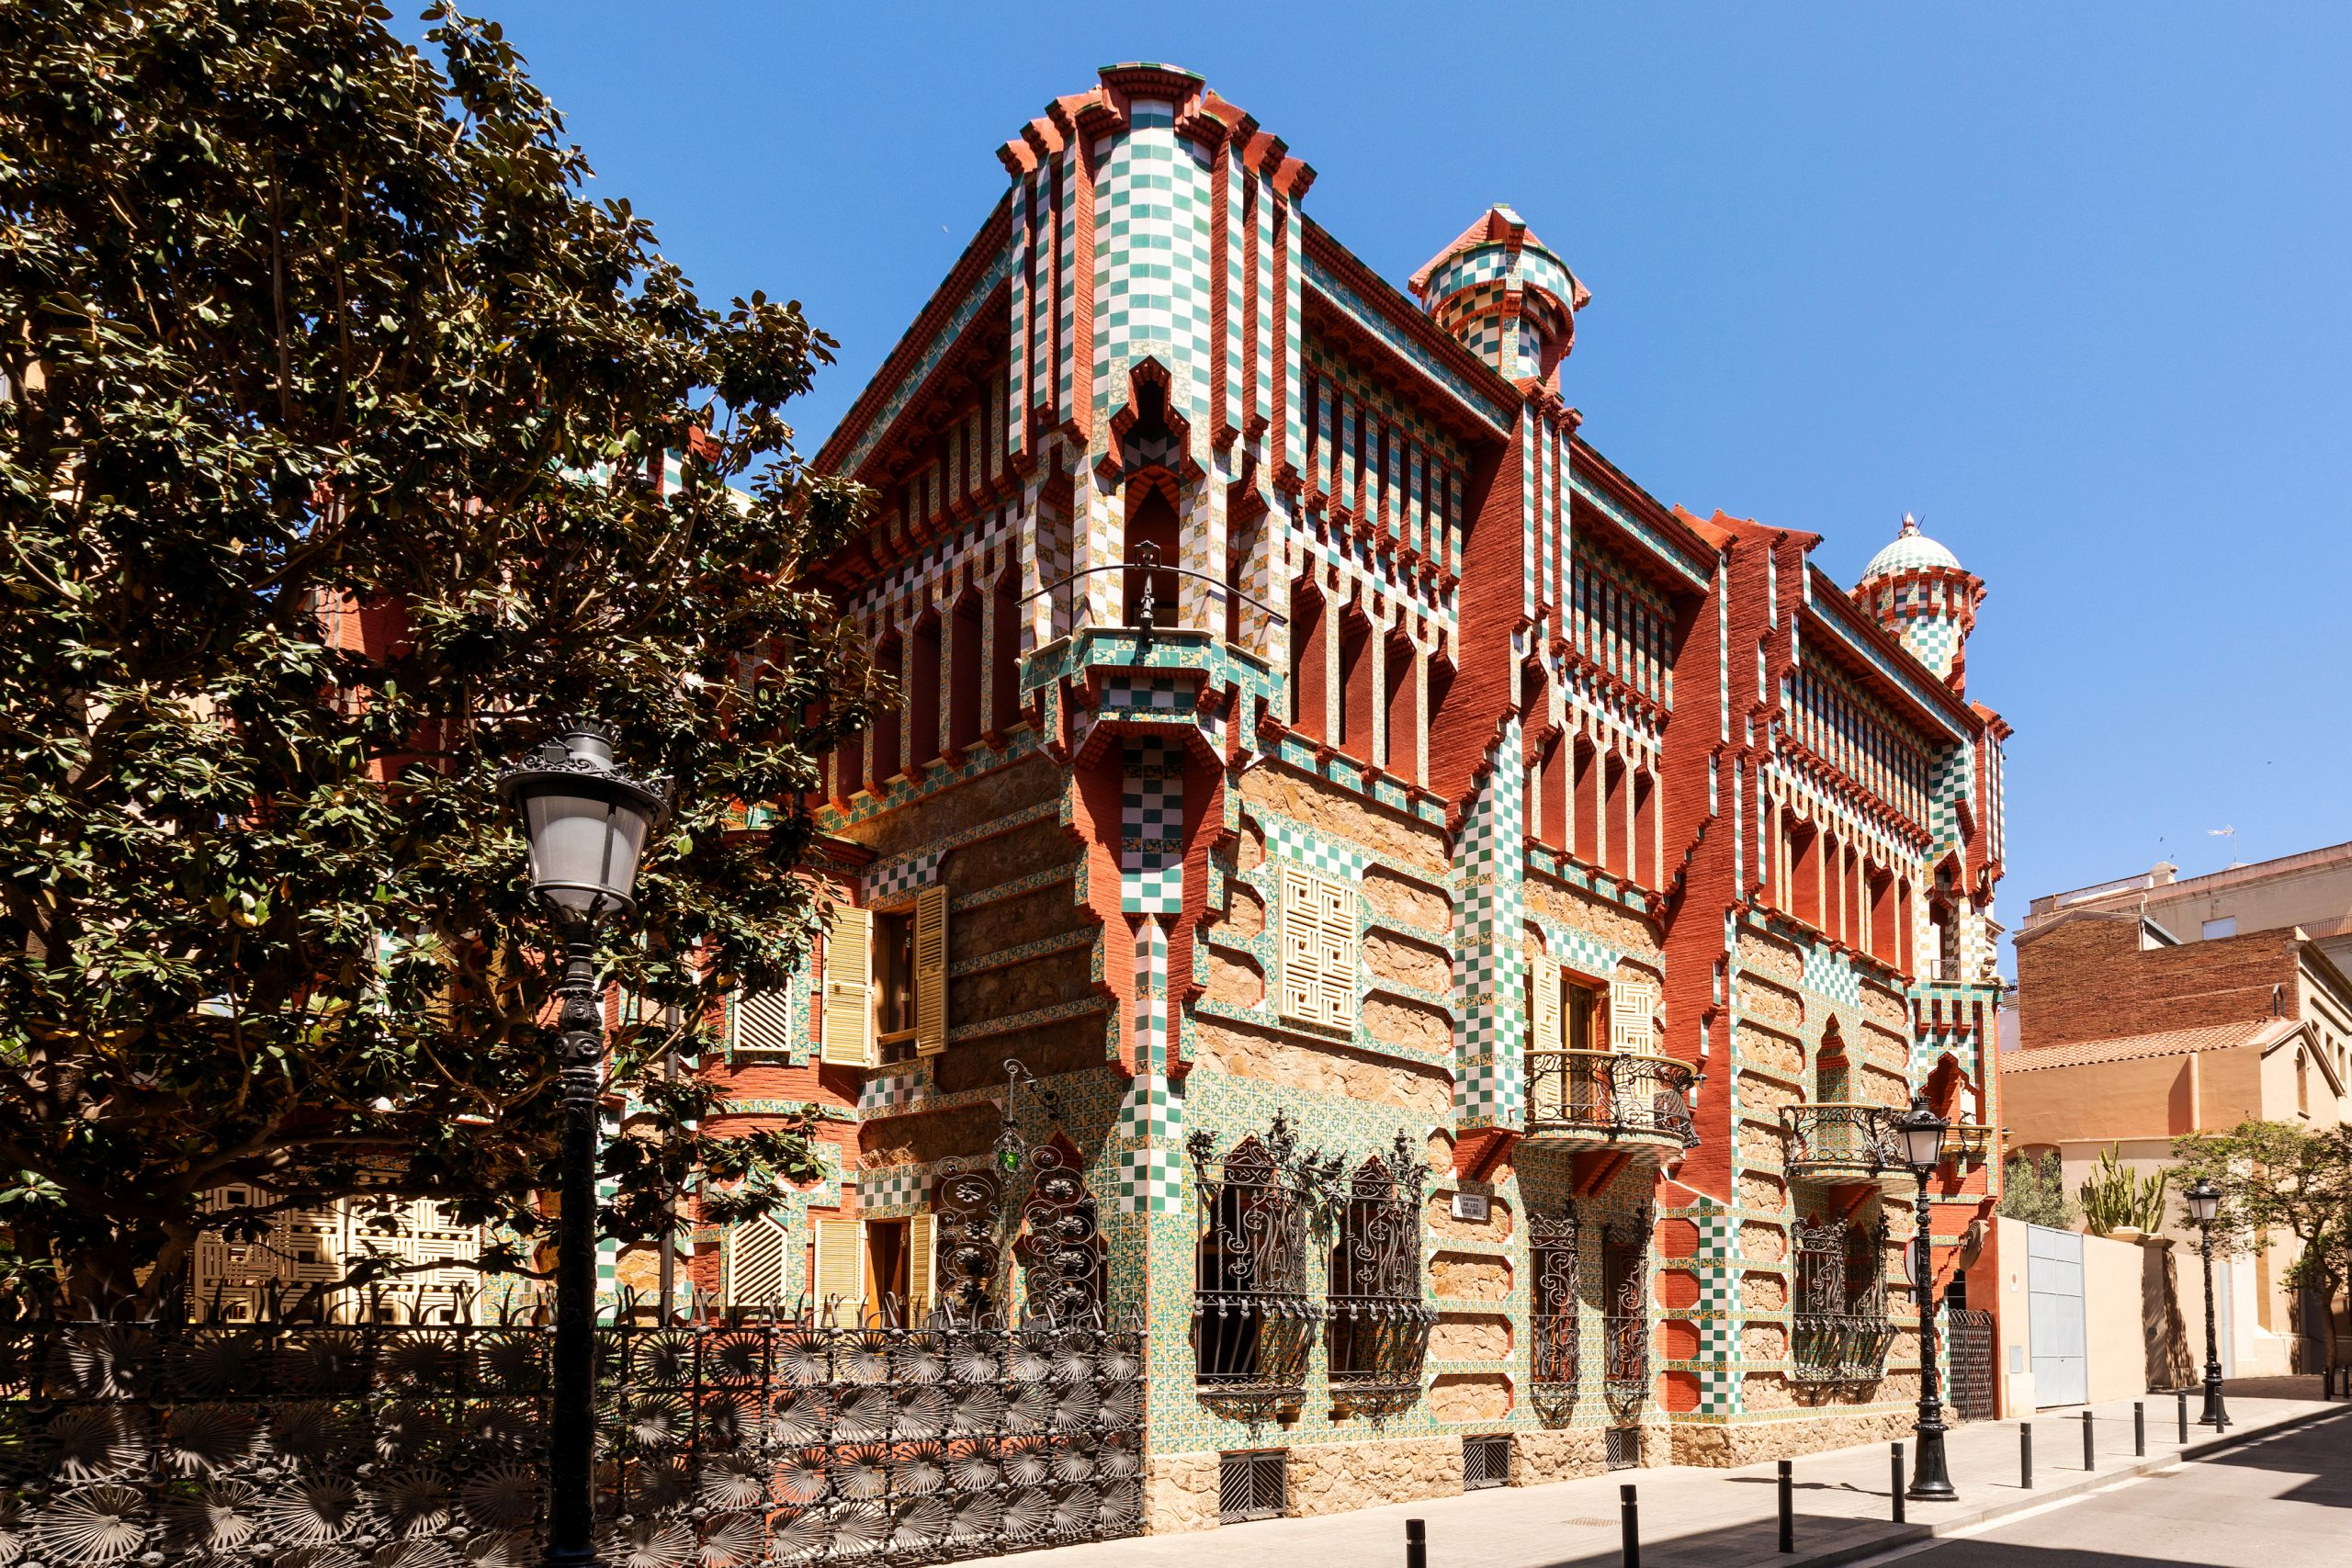 Airbnb Will Offer Overnight Stays at the First Home Legendary Architect Antoni Gaudí Ever Designed for Just $1